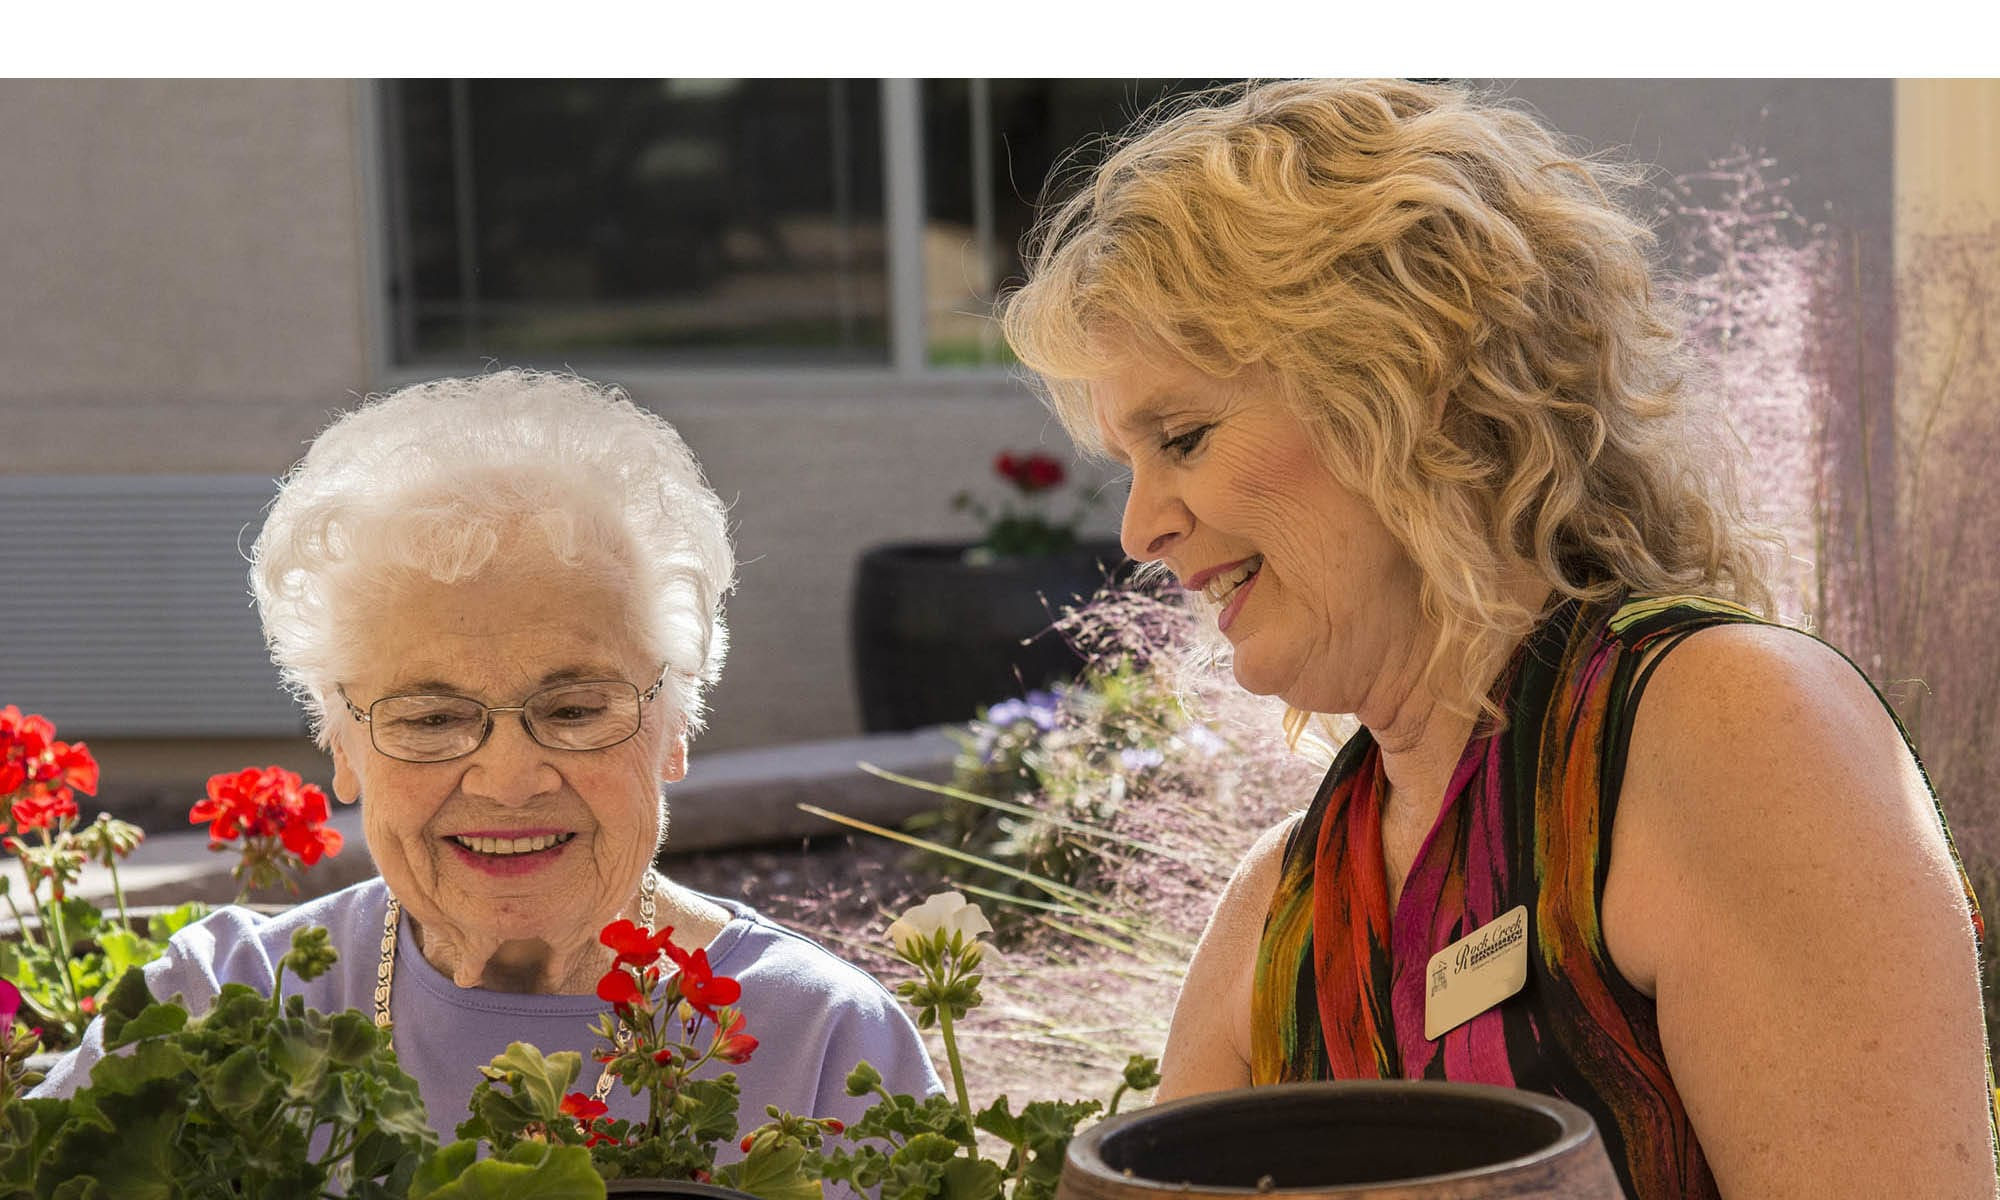 Alzheimer's Care at Pine Ridge Alzheimer's Special Care Center